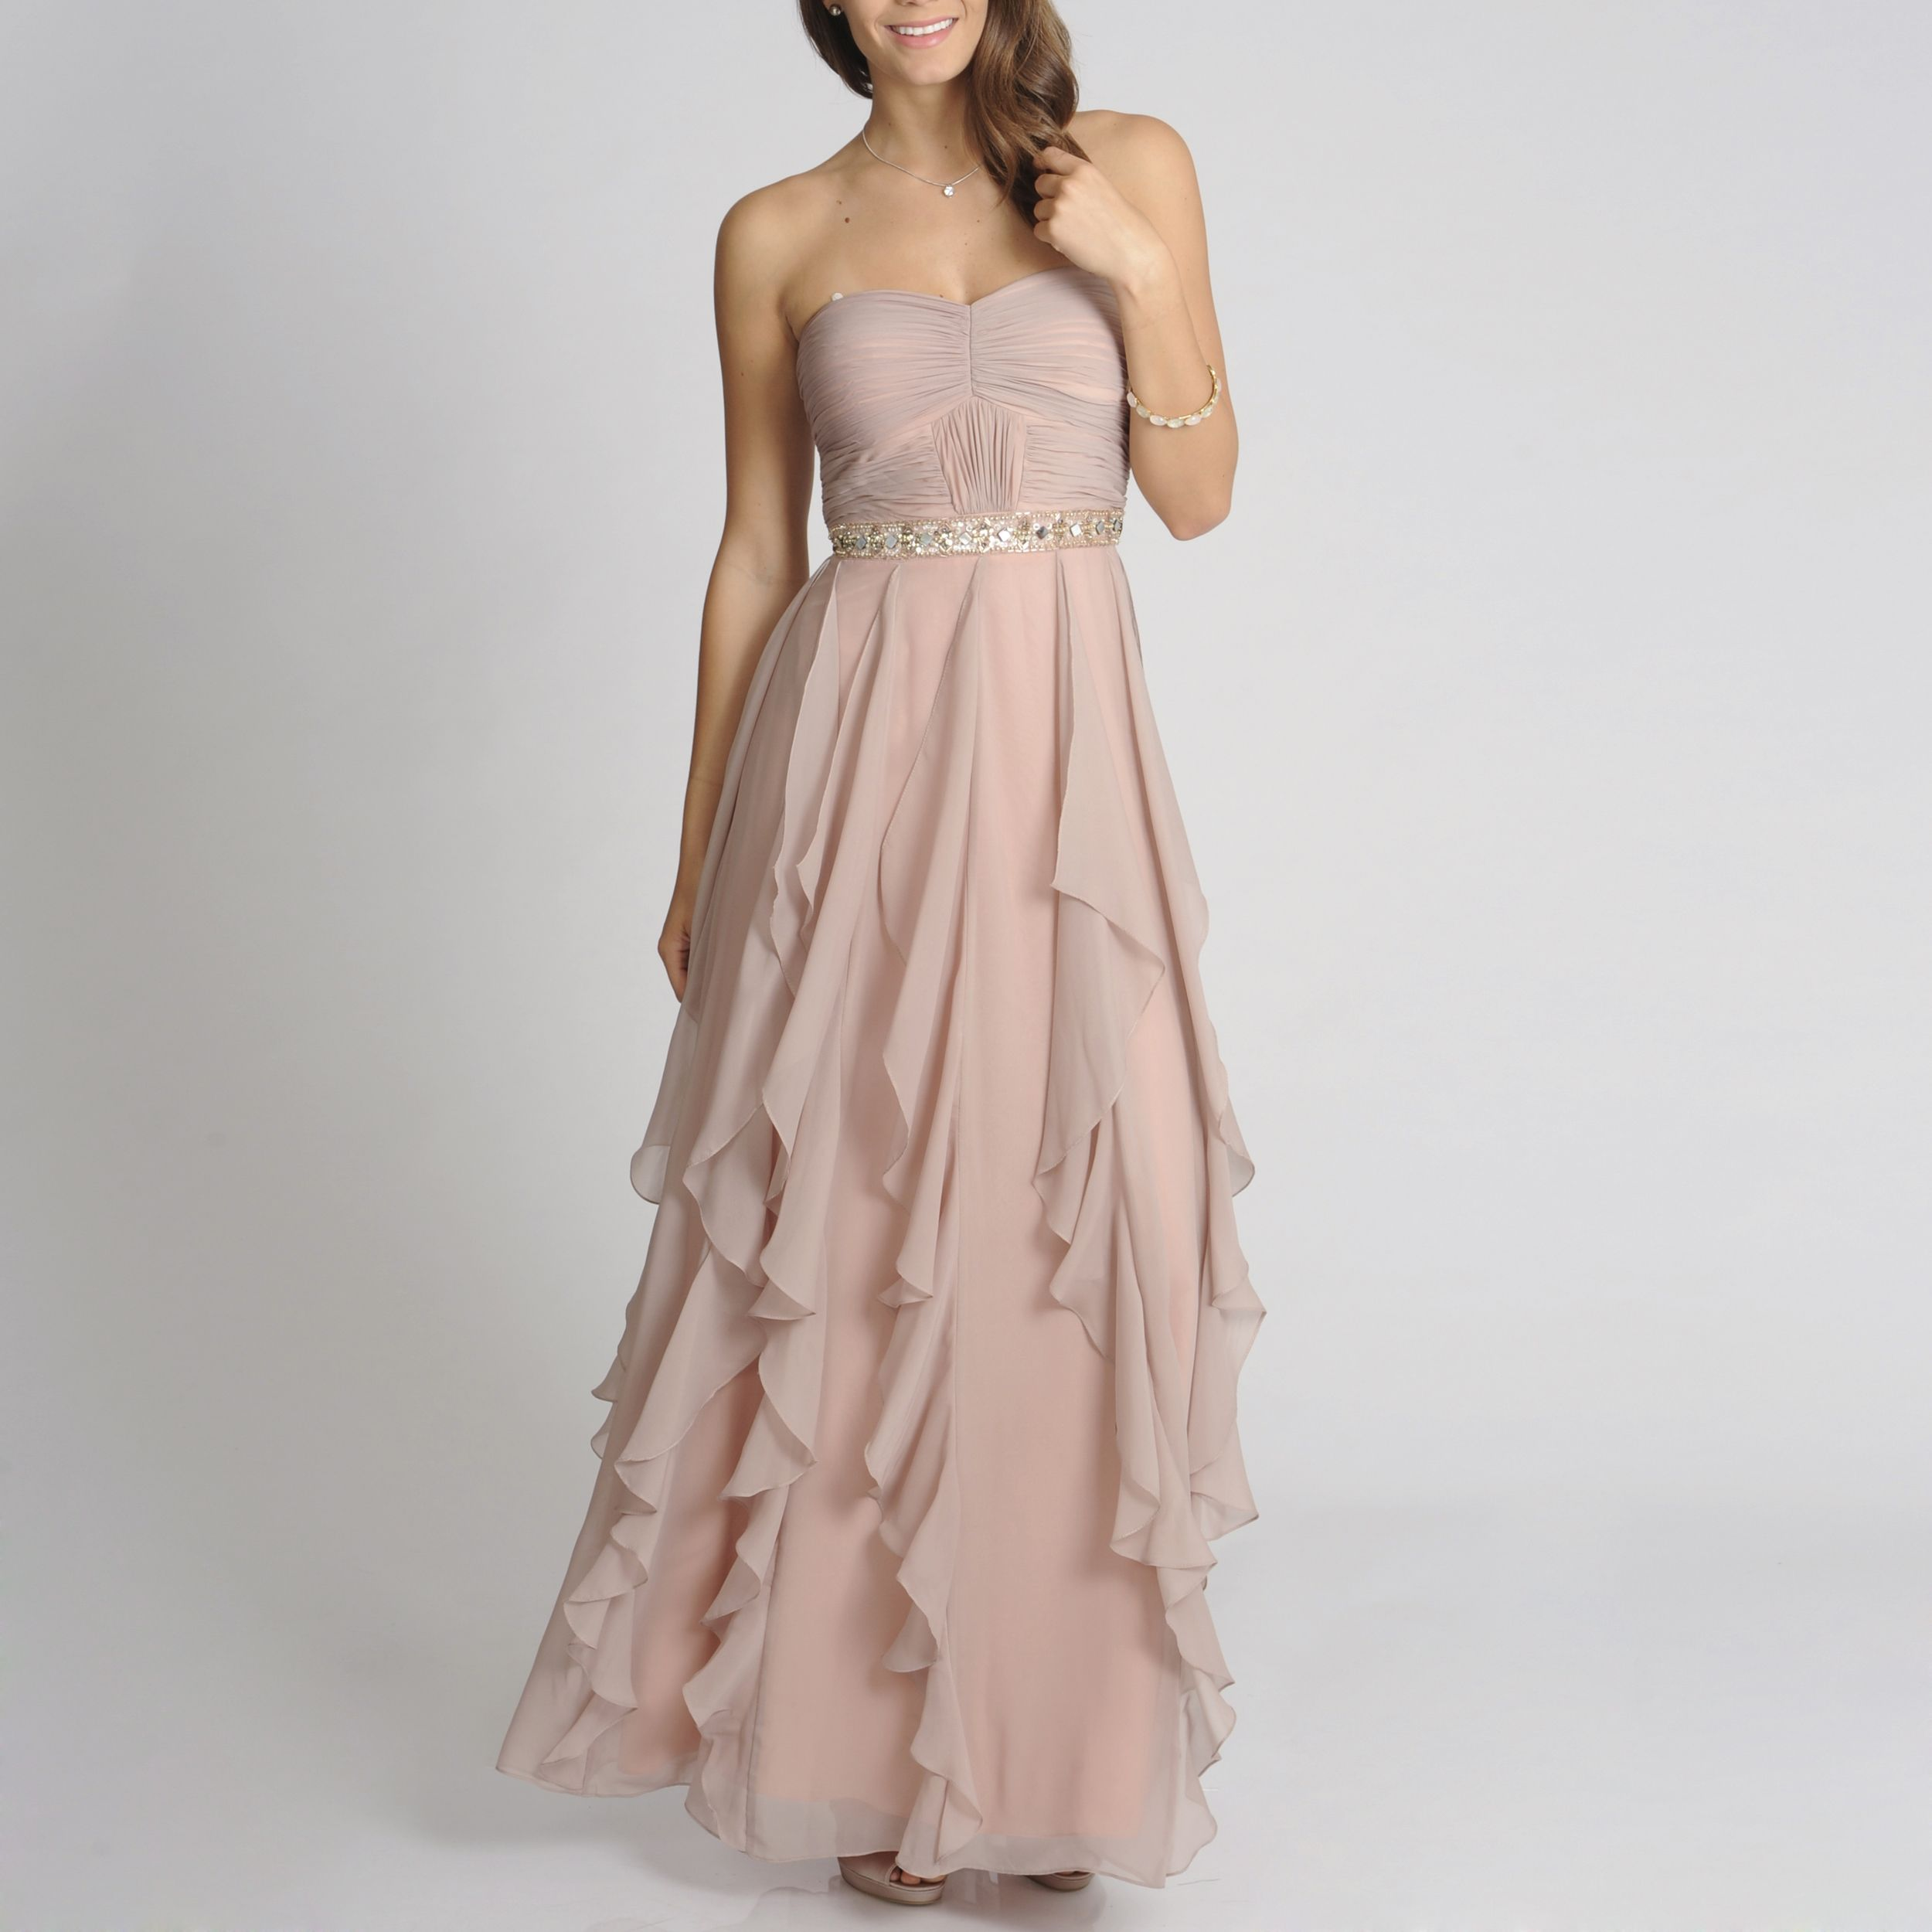 Be the belle of the ball in this gorgeous long, flowing evening gown. Featuring a beautifully tiered skirt that falls in the most graceful way and a soft, inviting hue, this lovely dress can be paired with jewels of any color for a sophisticated look.